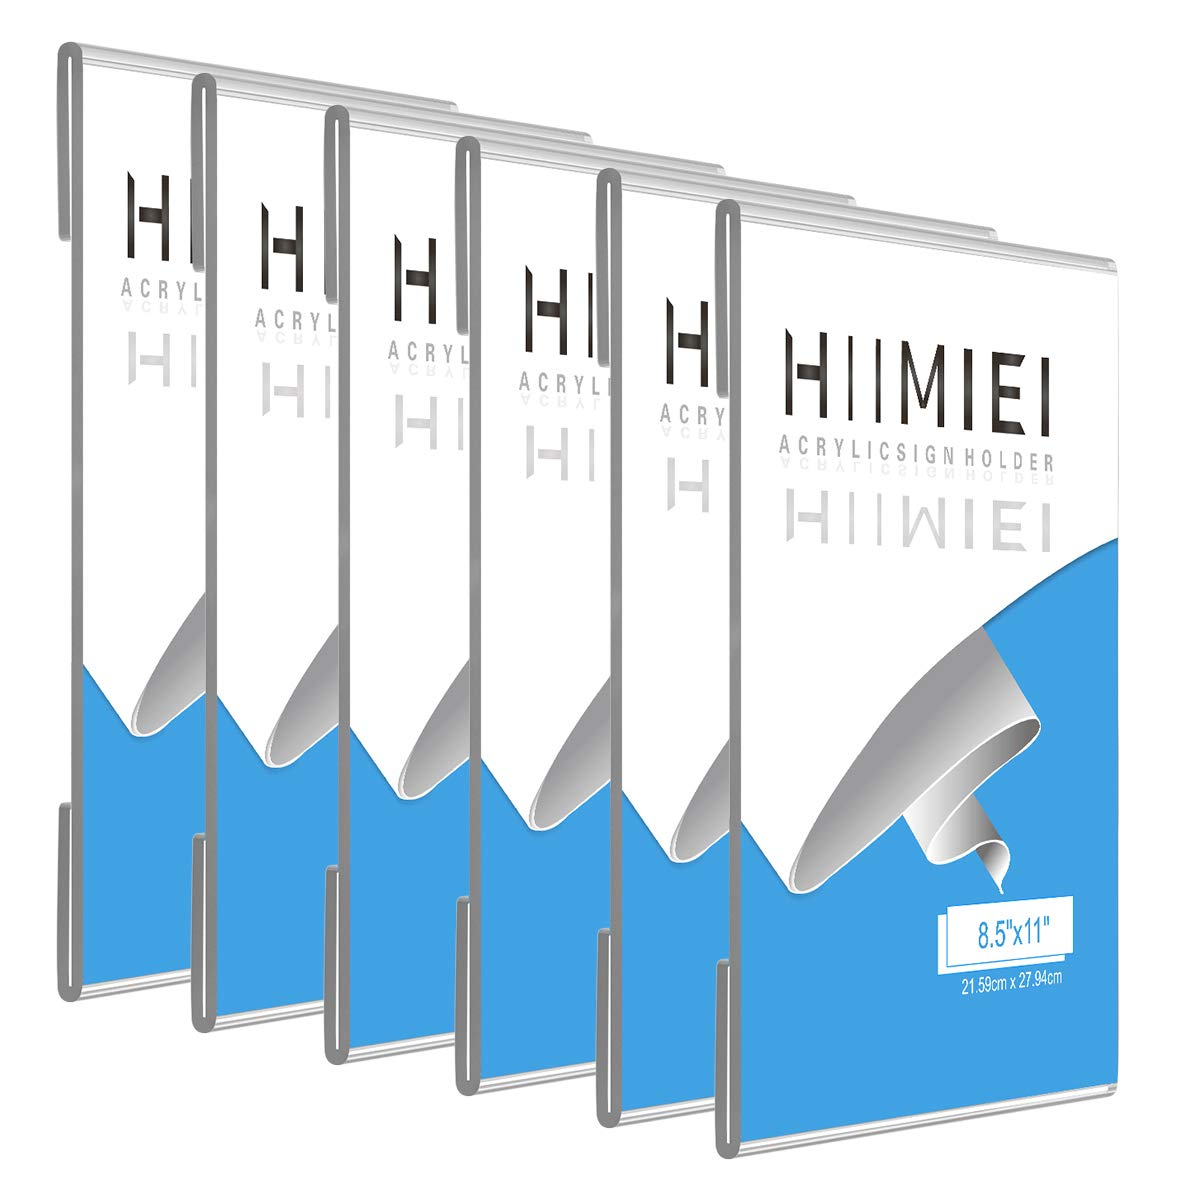 HIIMIEI 8.5x11 Acrylic Wall Sign Holder with 3M Tape, 8 1/2 x 11 Clear Plastic plexiglass Sign Holder for for Office, Home, Store, Restaurant-No Drilling(6 Pack)